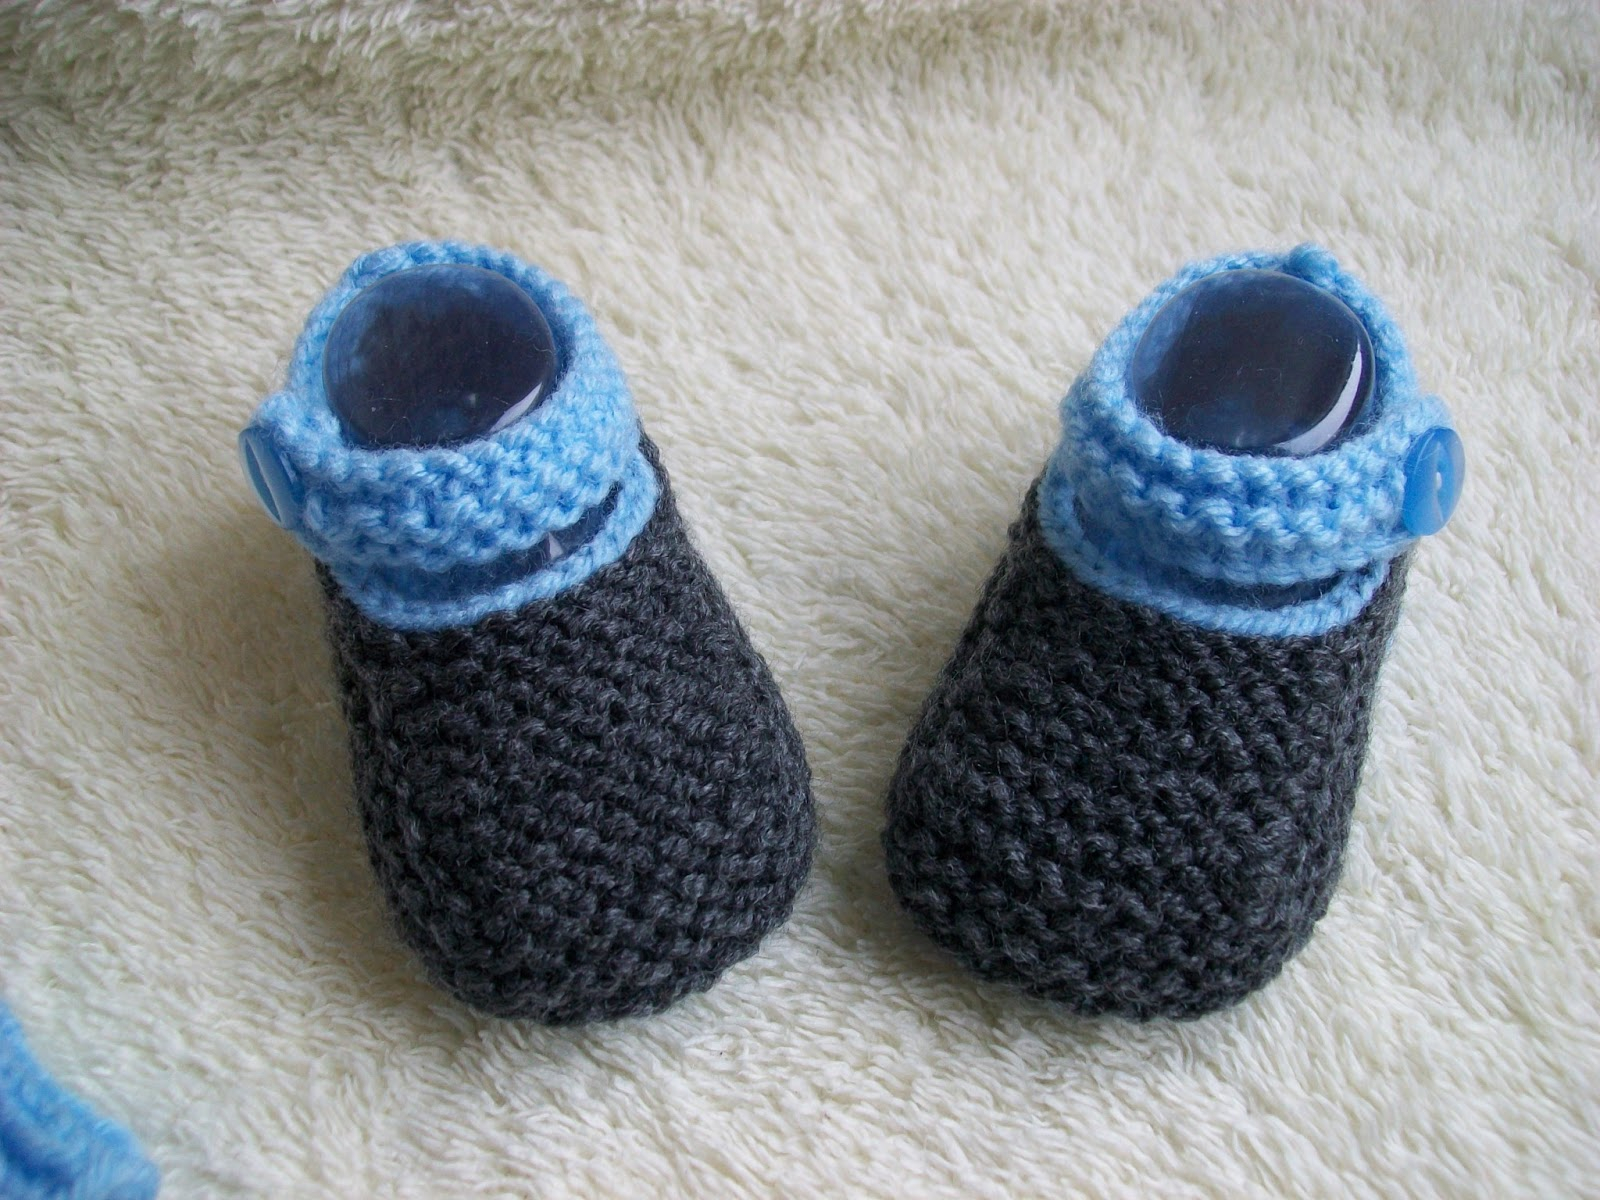 Free Baby Knitting Patterns Double Knit 30 Free Patterns For Knitted Ba Booties Guide Patterns